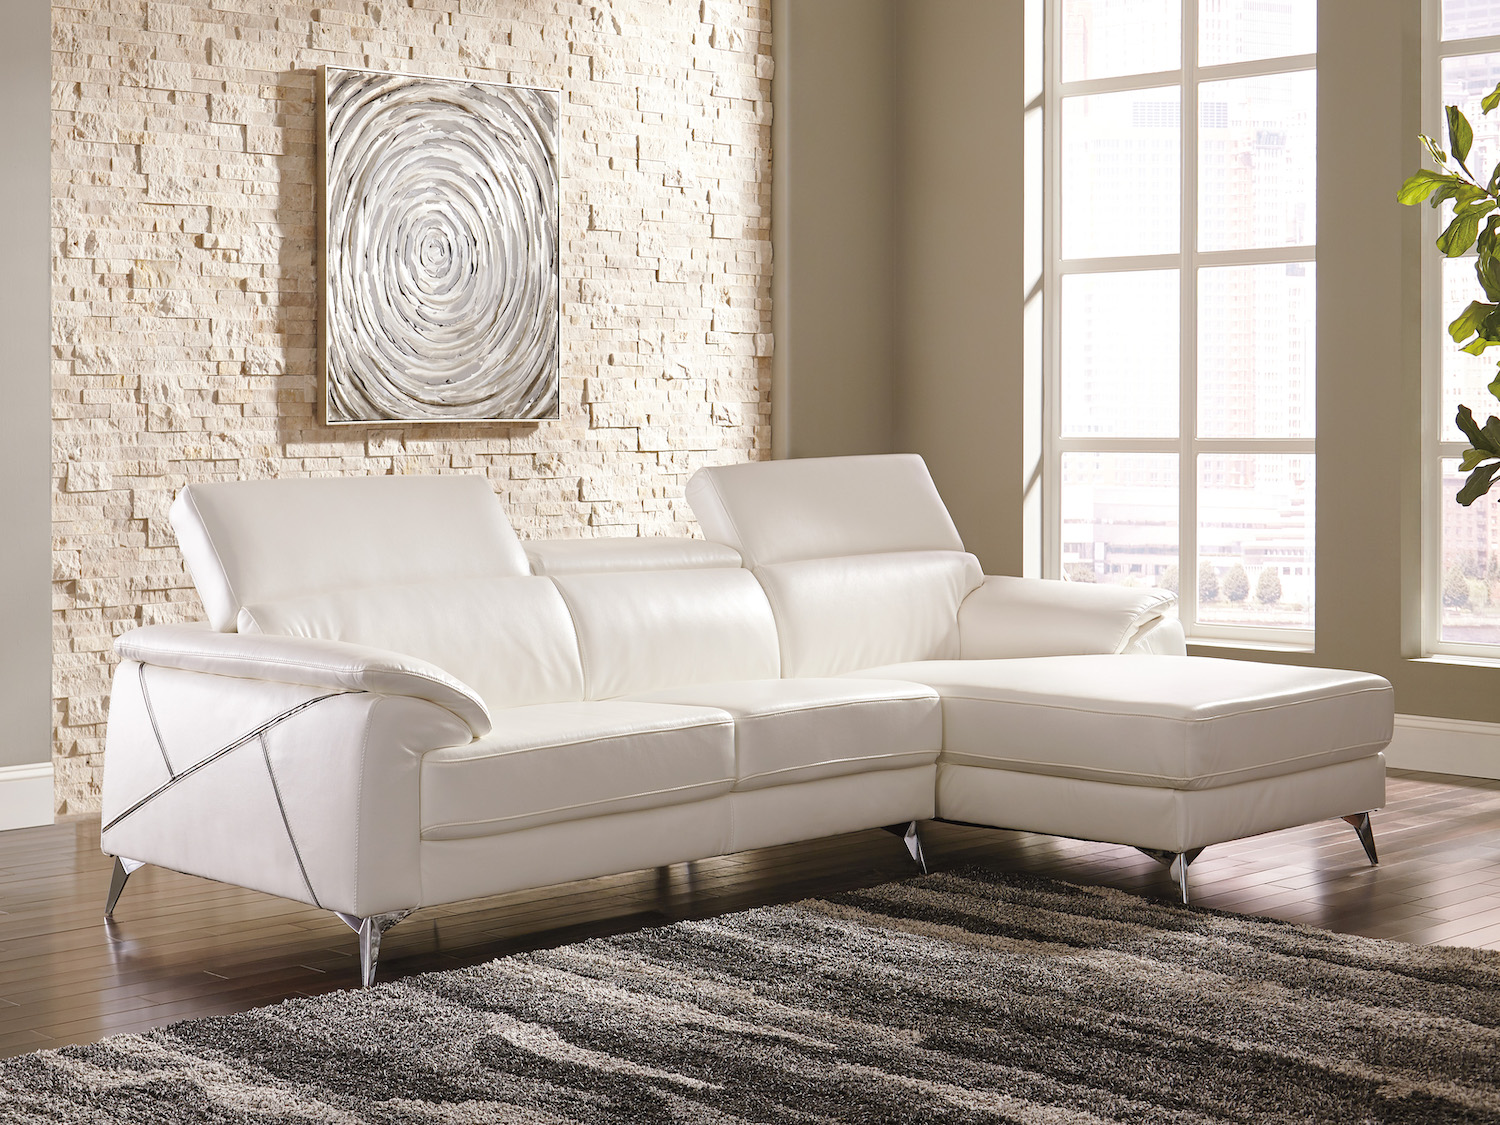 Tindell Sectional, 37303, Sectionals by Midha Furniture to Brampton, Mississauga, Etobicoke, Toronto, Scraborough, Caledon, Oakville, Markham, Ajax, Pickering, Oshawa, Richmondhill, Kitchener, Hamilton and GTA area